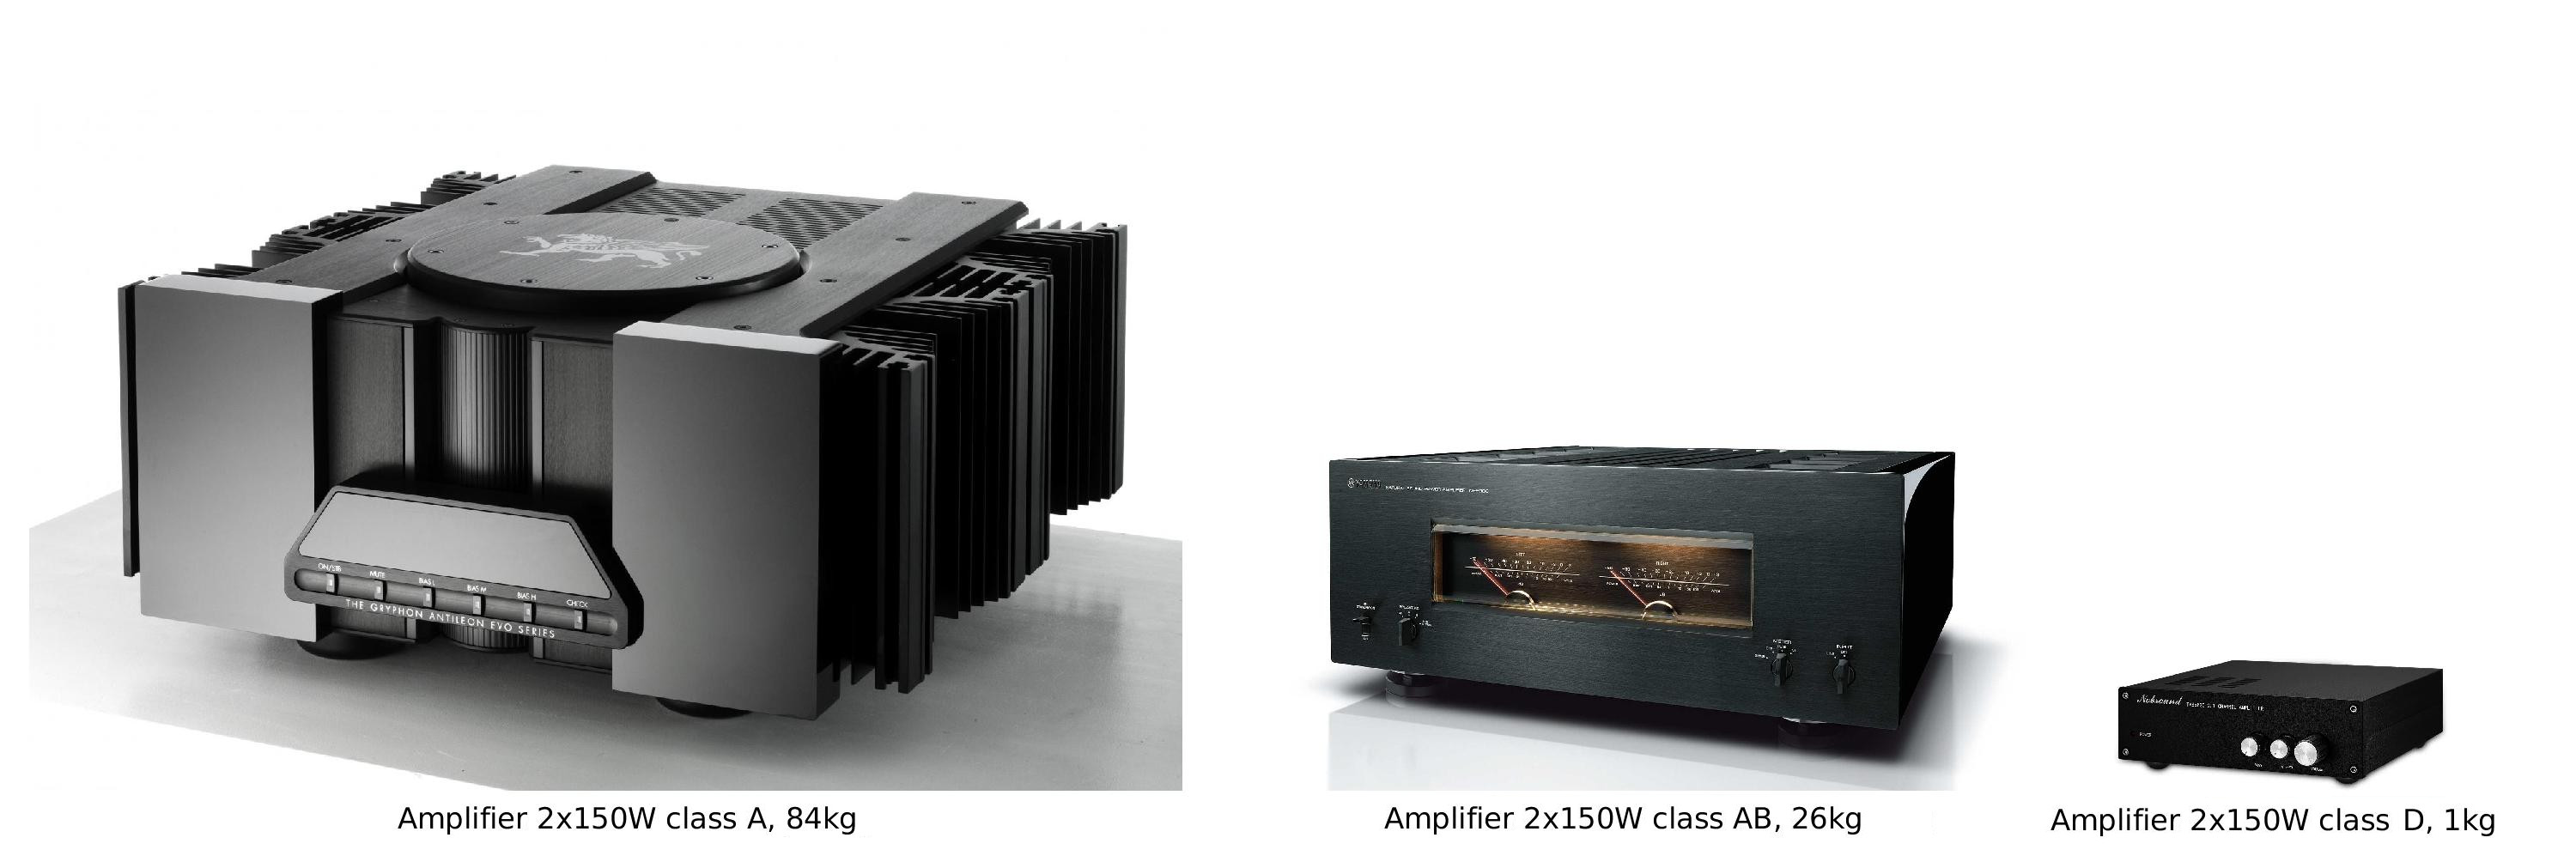 Amplifiers of equal power, 2x150W, compared in terms of class, dimensions and weight